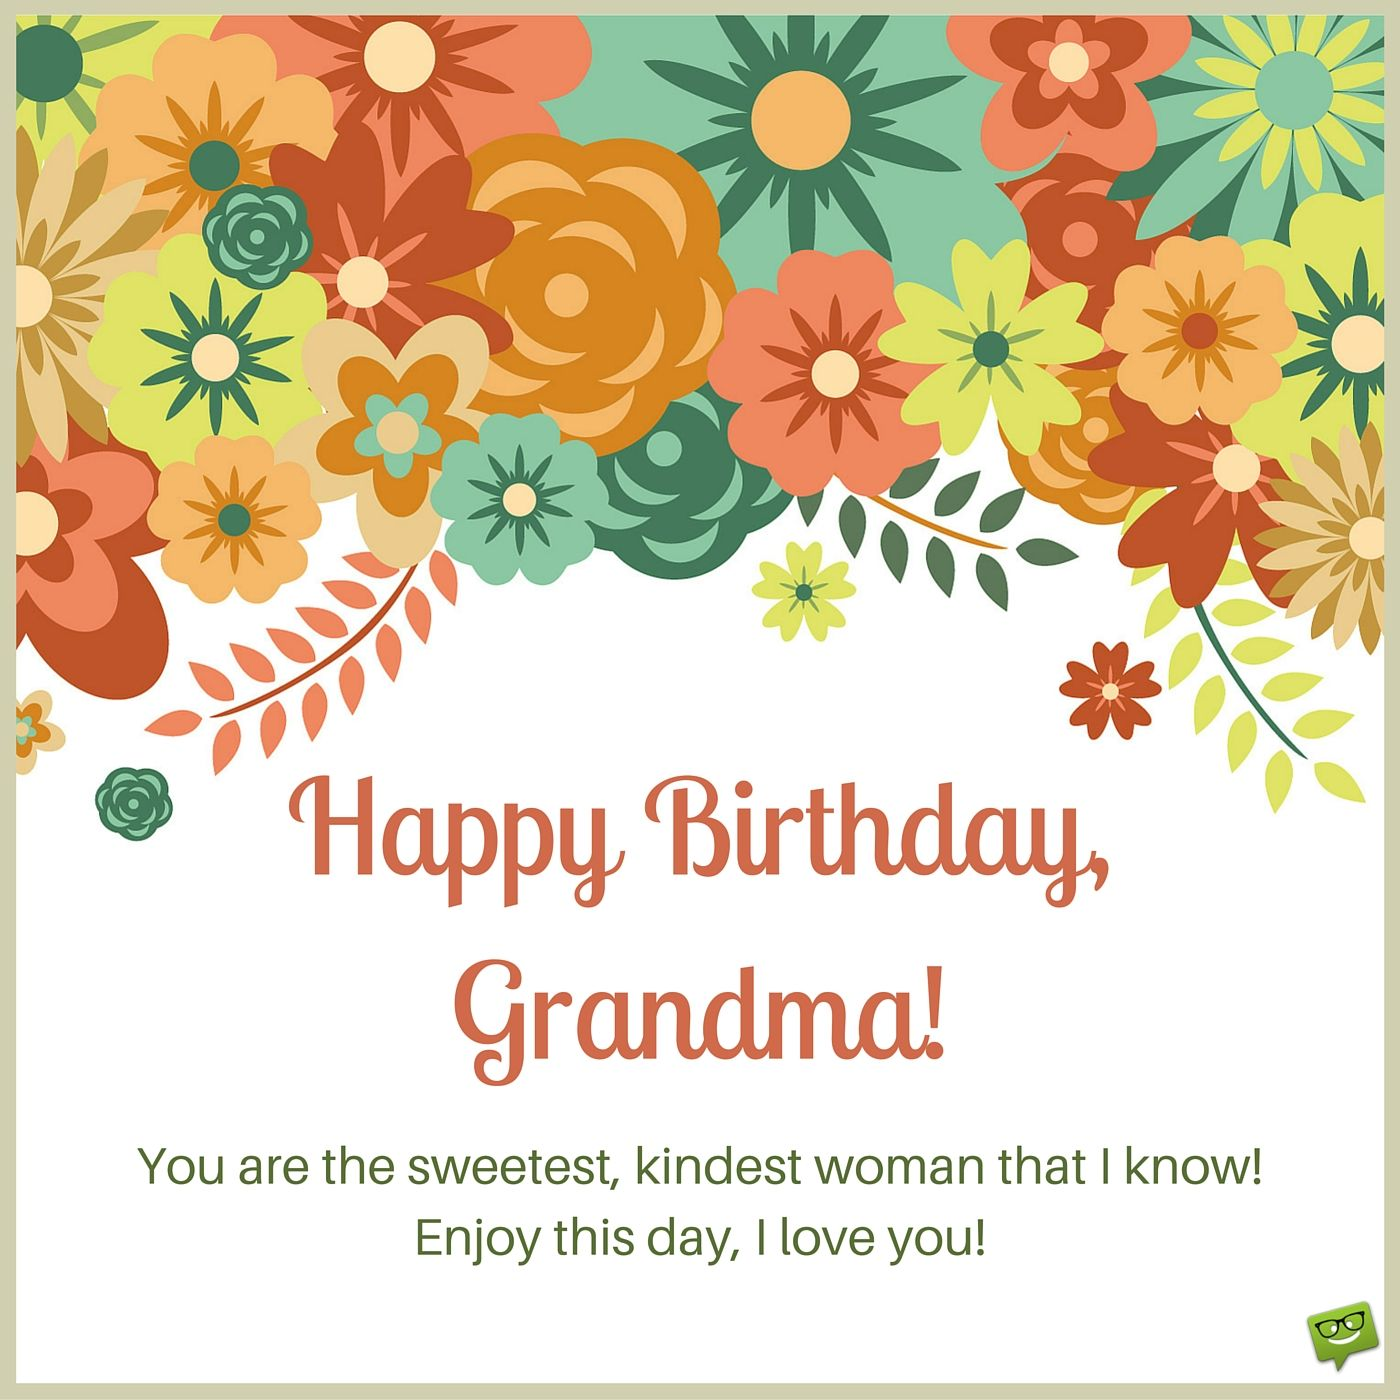 Birthday Wish For Grandma On Card With Drawings Of Colorful